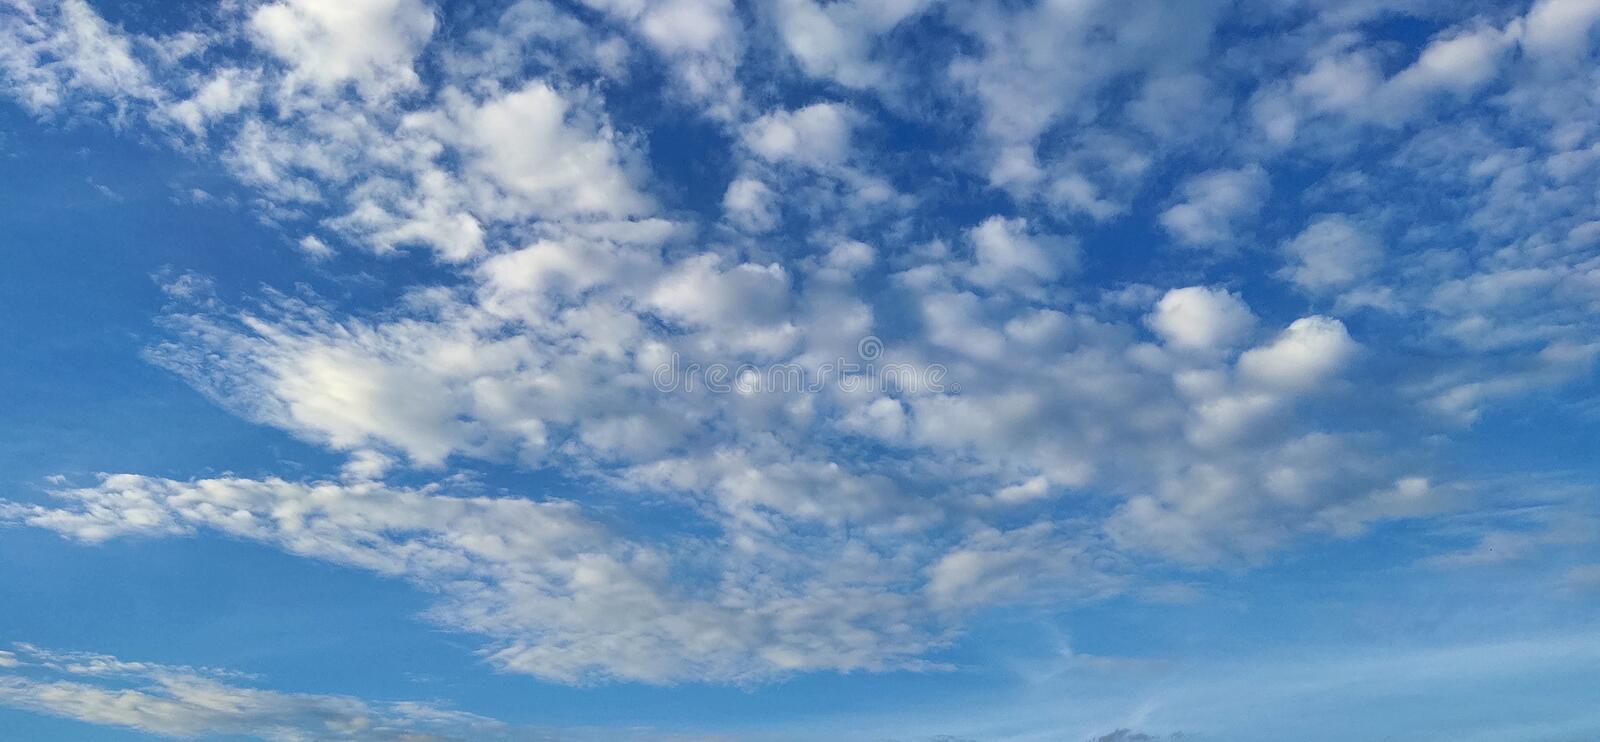 Bright blue with small clouds floating sky looks beautiful royalty free stock images